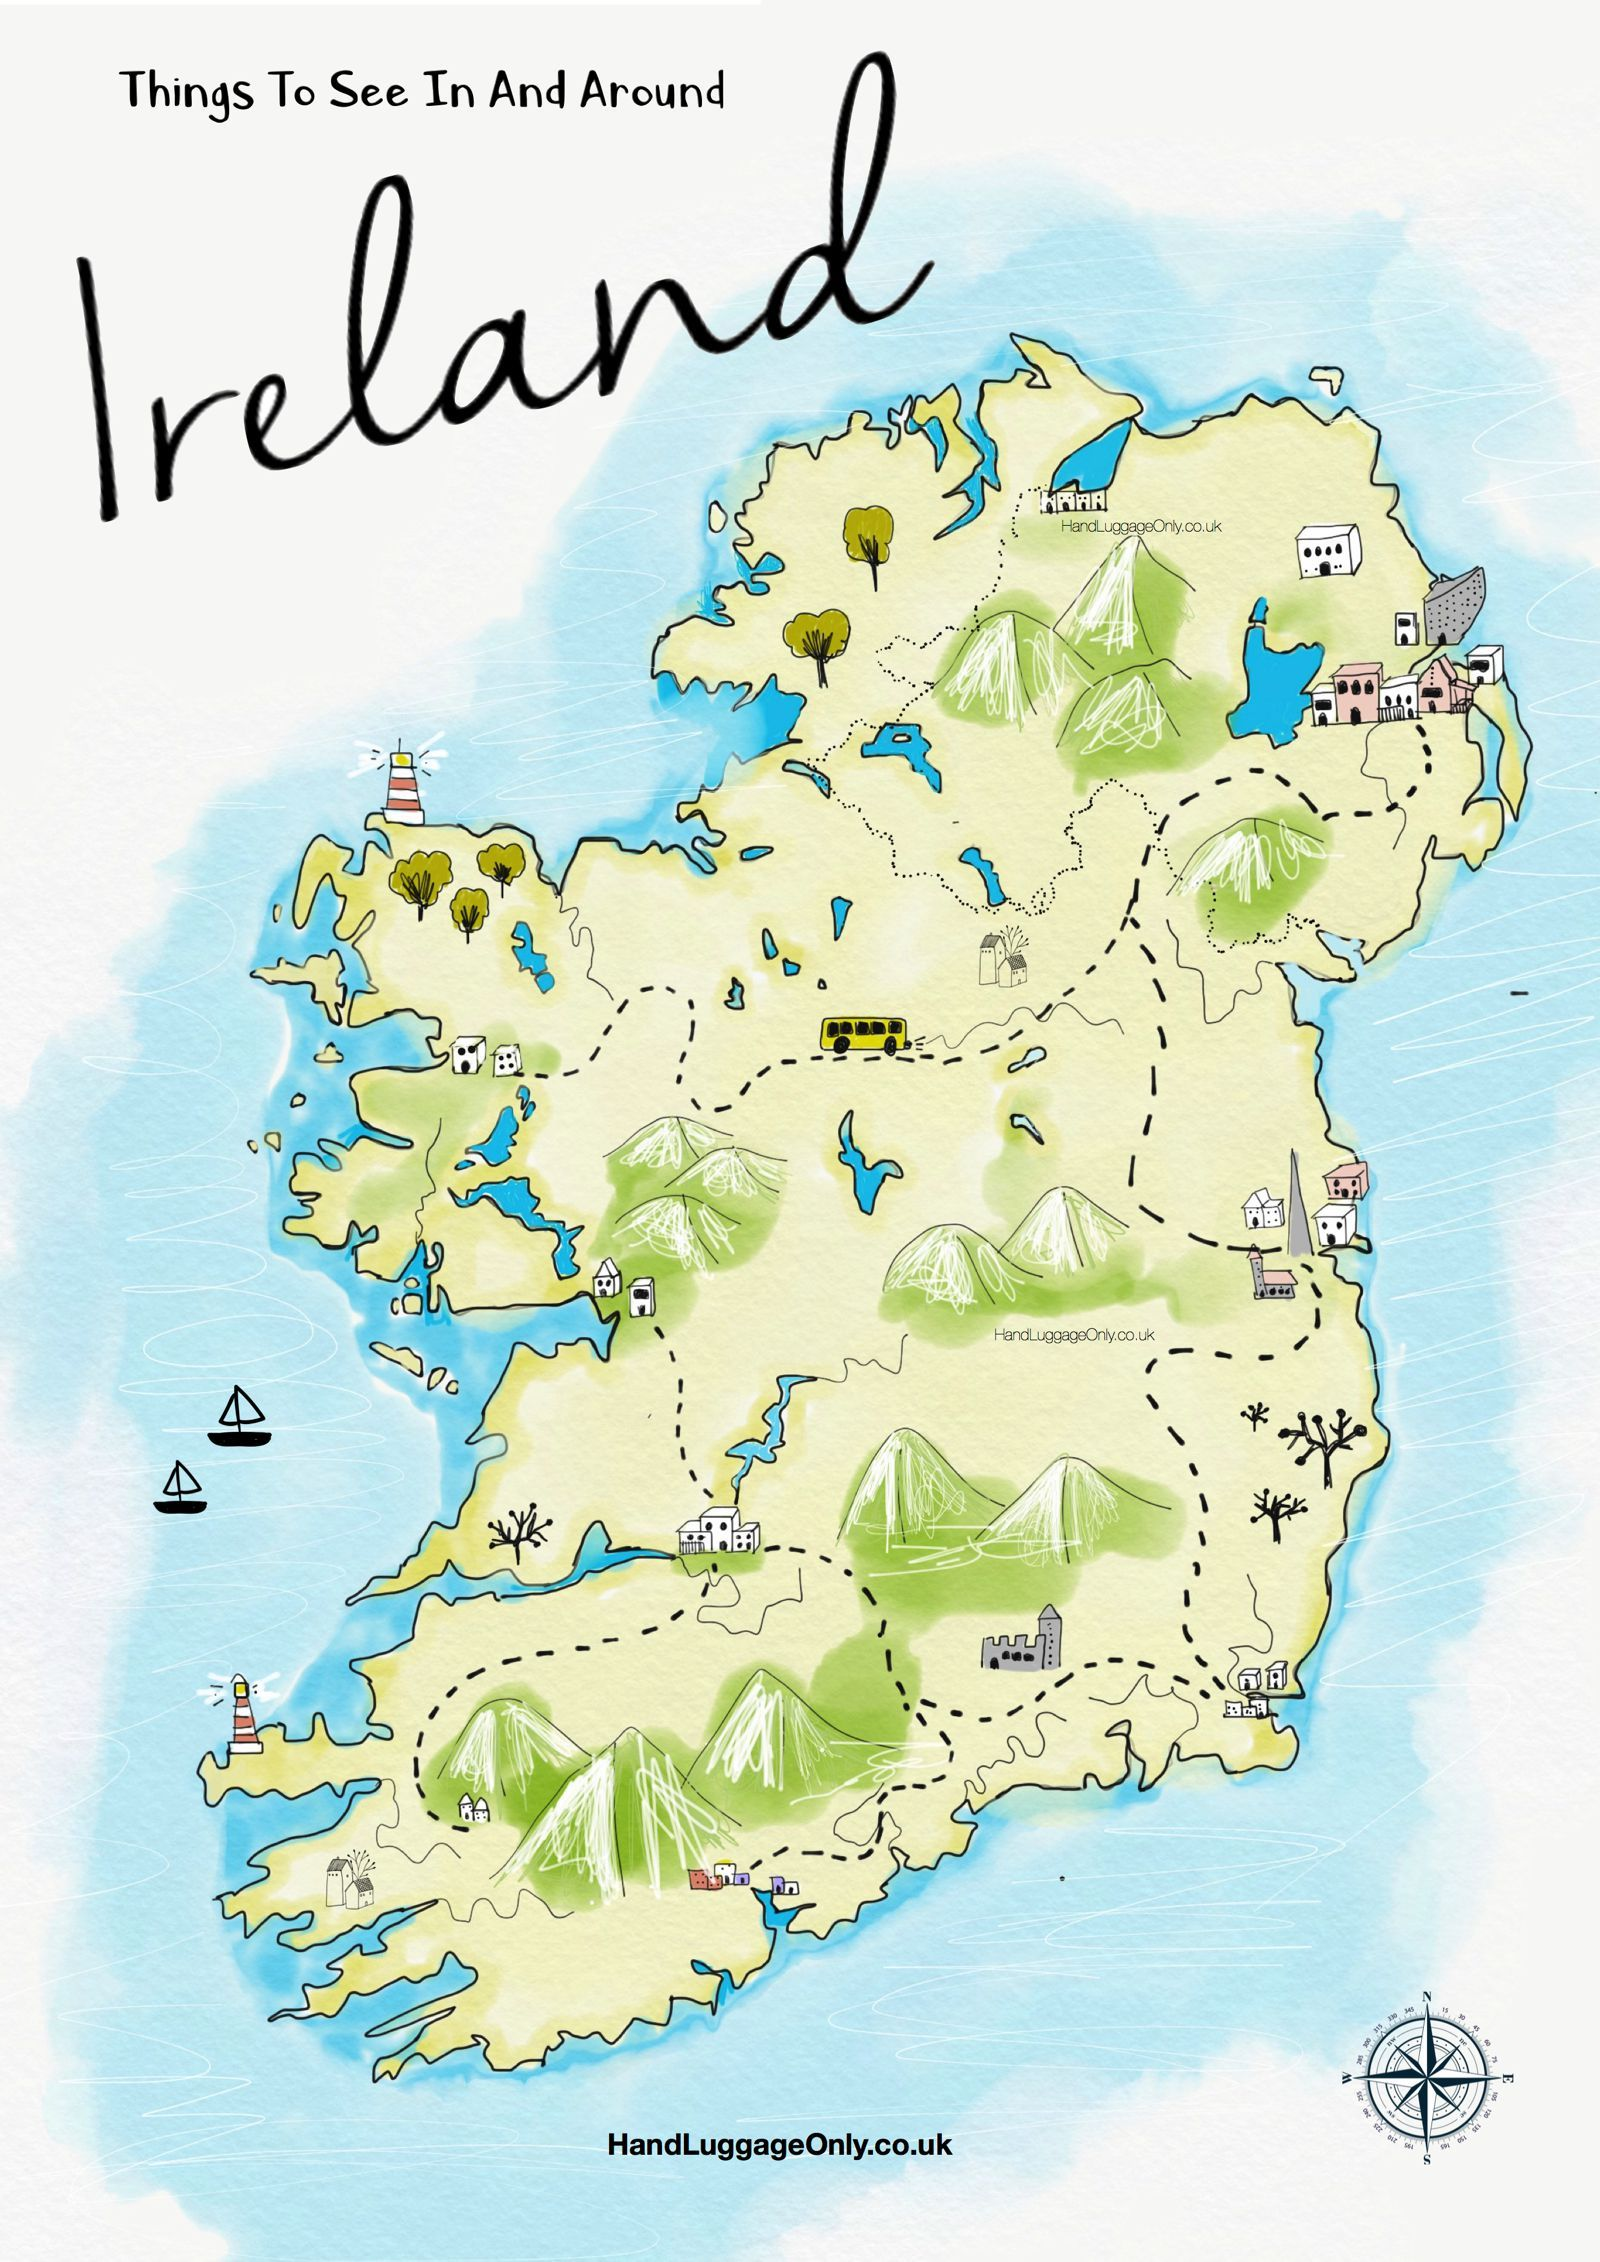 Map Of North And South Ireland.19 Stunning Things To See And Do Across Ireland Ireland Ireland